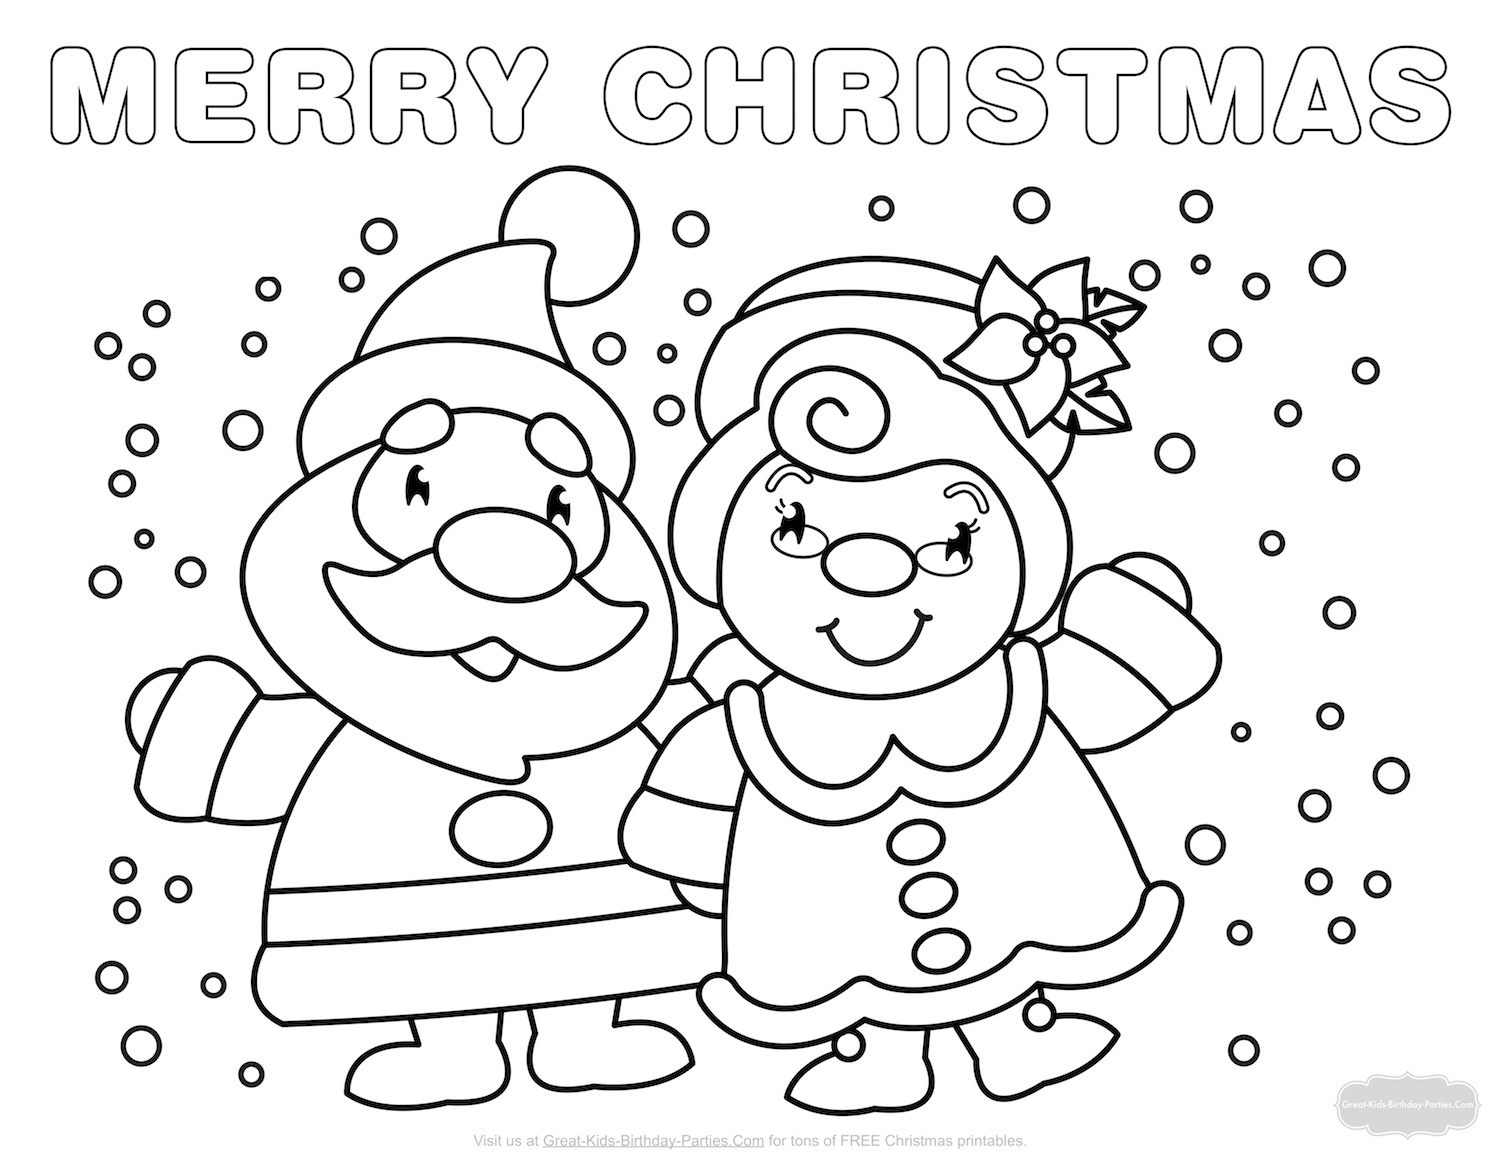 Christmas Coloring Pages Free Christmas Coloring Pages Rudolph Coloring Pages Christmas Coloring Pages